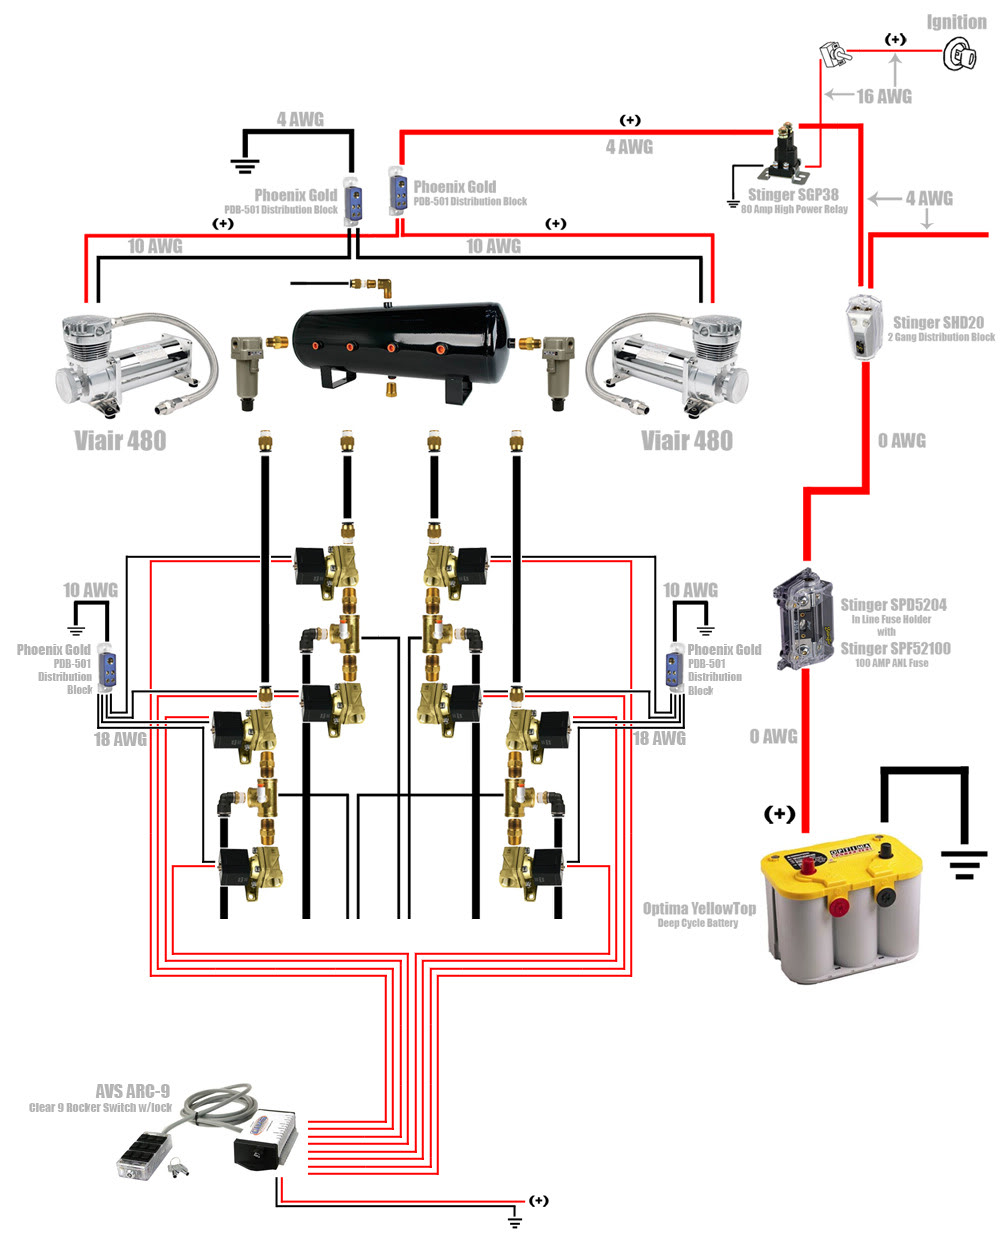 112076d1431716929 uas bags install compressor_wiring2?resize=665%2C817 viair 480c wiring diagram viair wiring diagrams collection viair 444c wiring diagram at reclaimingppi.co